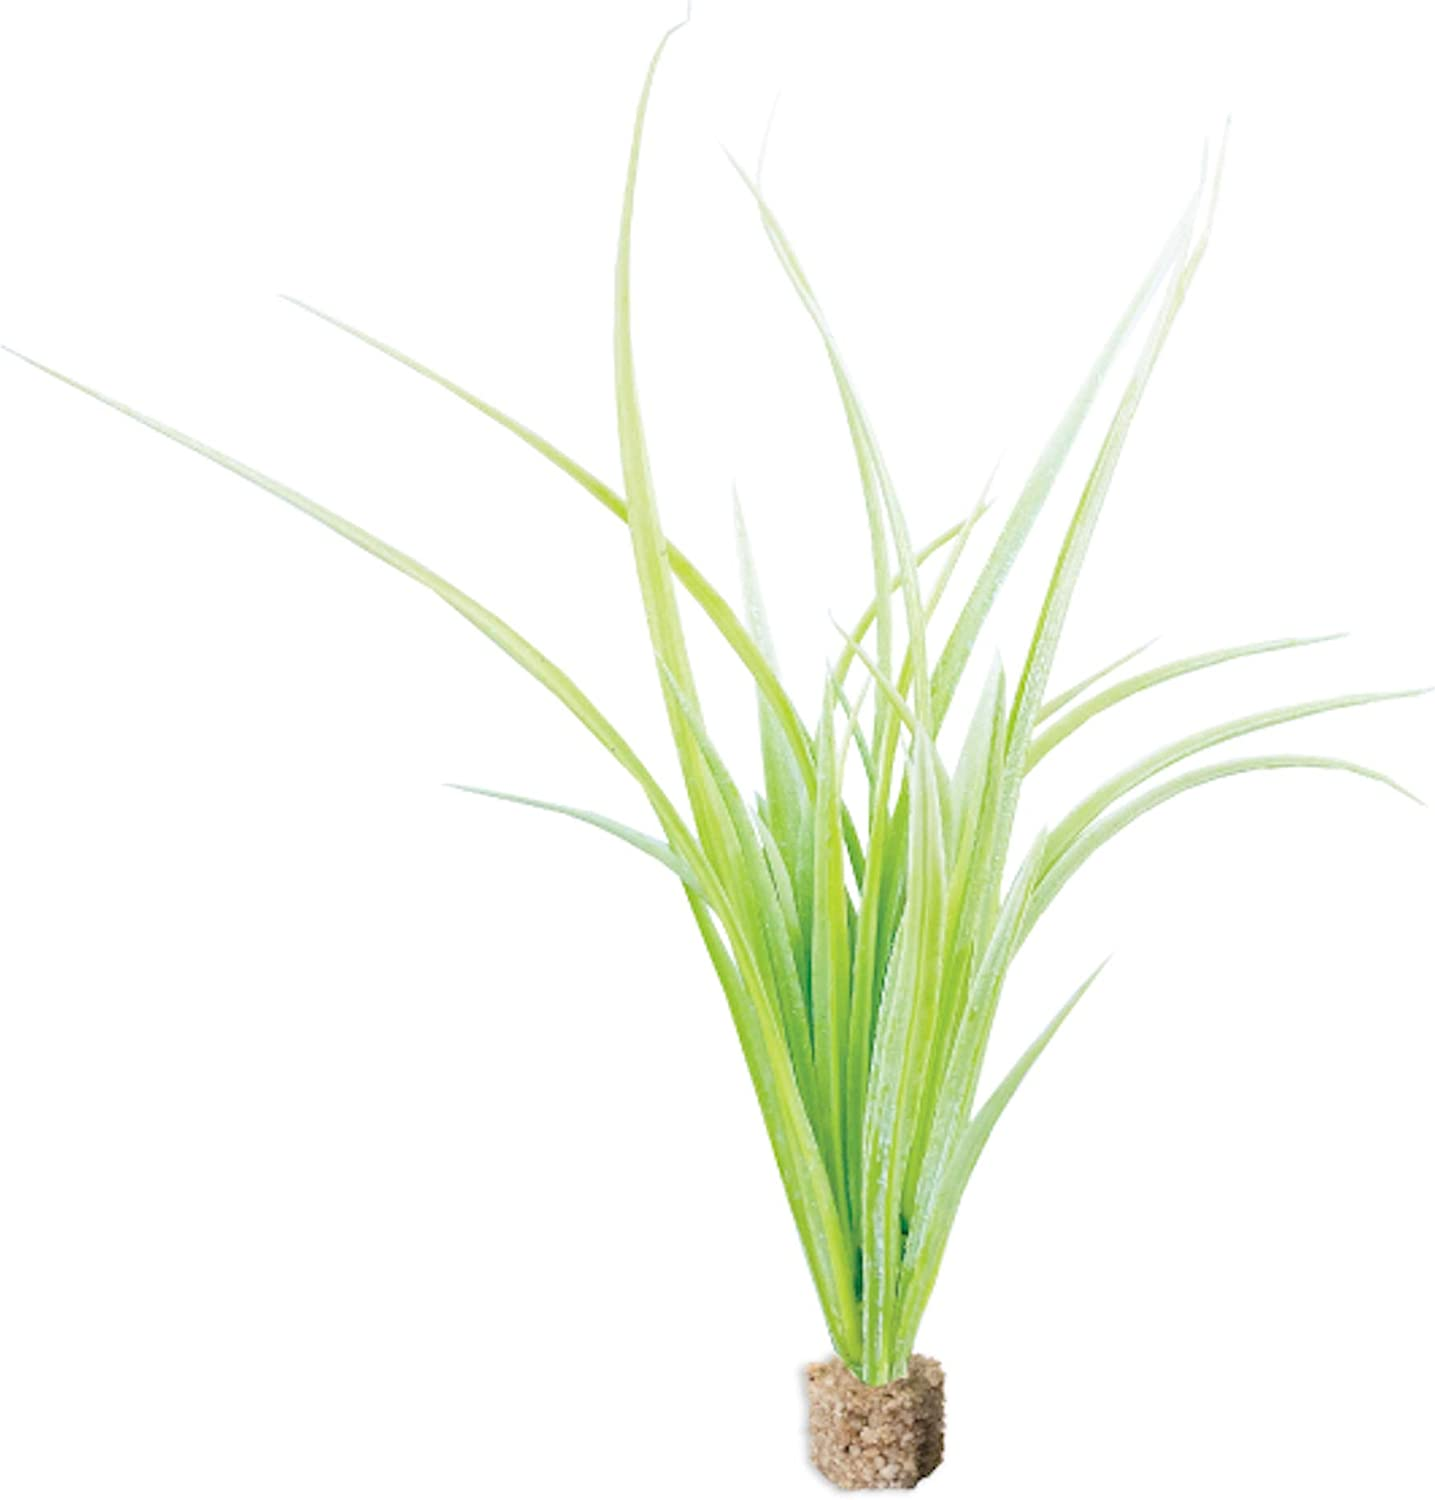 Current USA 12'' Tall Fountain Grass Artificial Aquarium Plant Decor with Weighted Stone Base| Natural, Lifelike Freshwater Fish Tank Decoration | Non-Toxic Plastic | Light Green